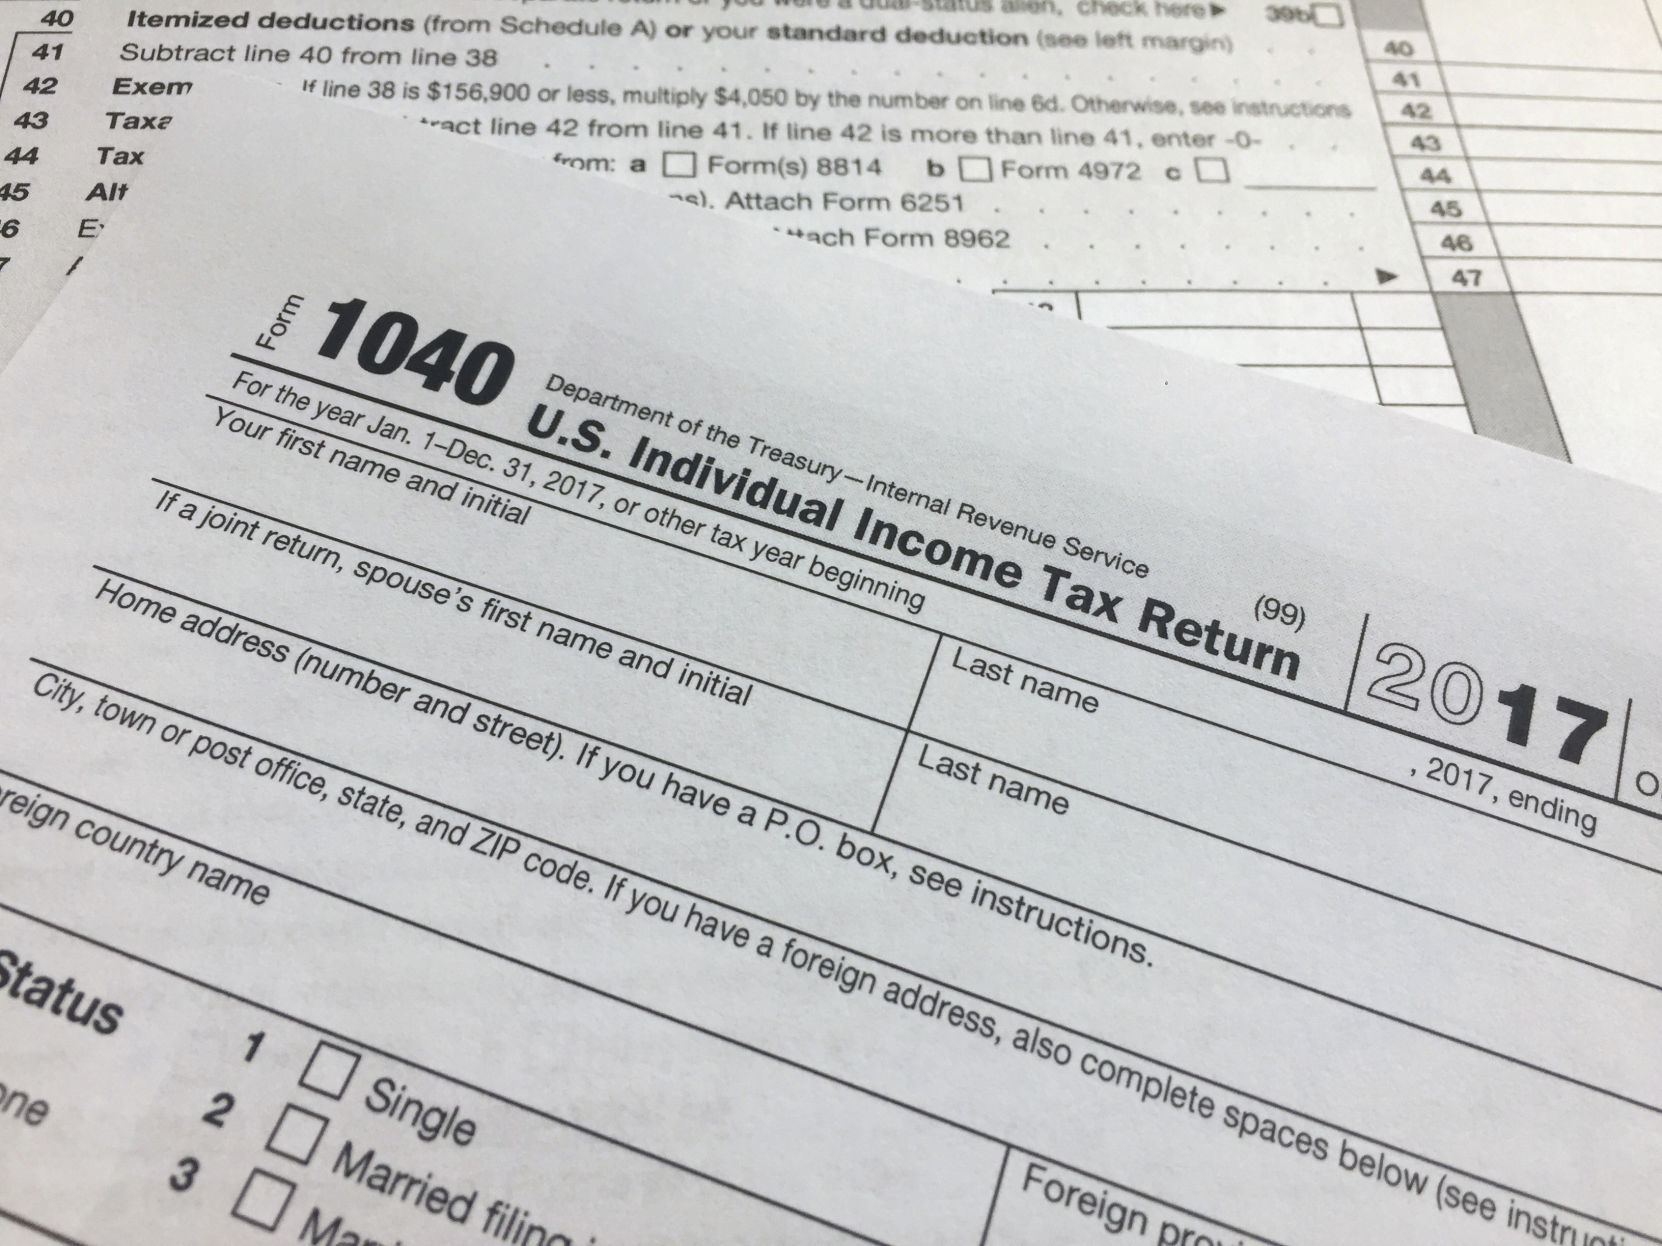 IRS urging taxpayers do a paycheck checkup - Michael Smeriglio